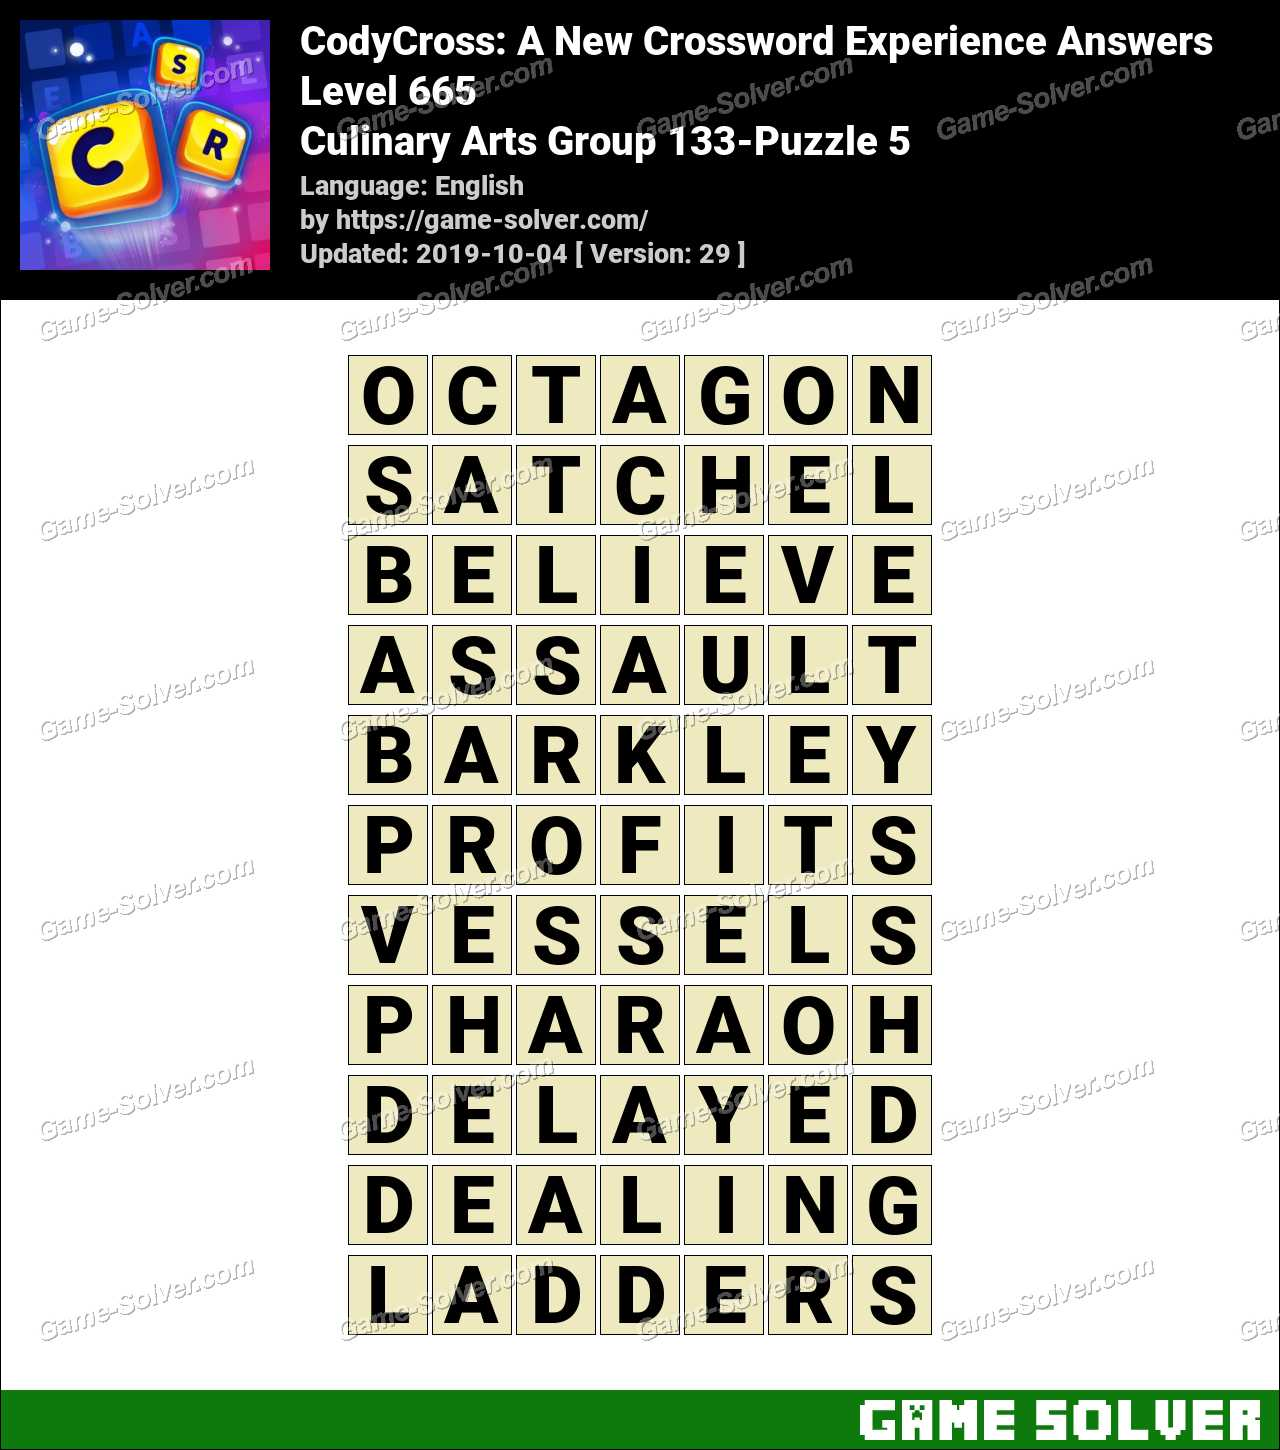 CodyCross Culinary Arts Group 133-Puzzle 5 Answers